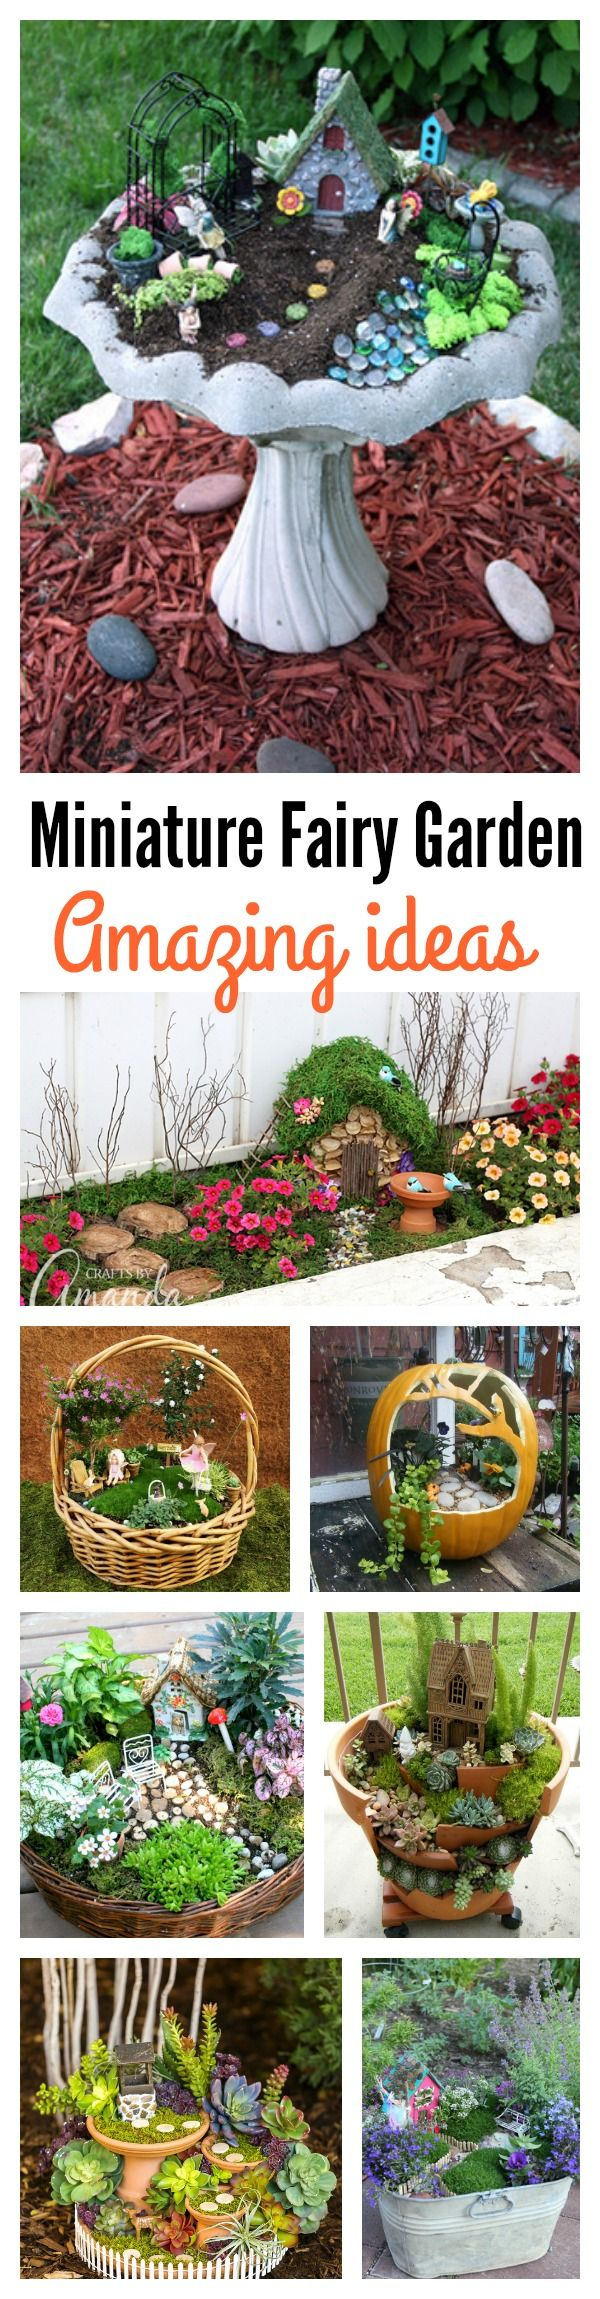 Ideas For Fairy Gardens 99 magical and best plants diy fairy garden ideas 8 Amazing Miniature Fairy Garden Diy Ideas